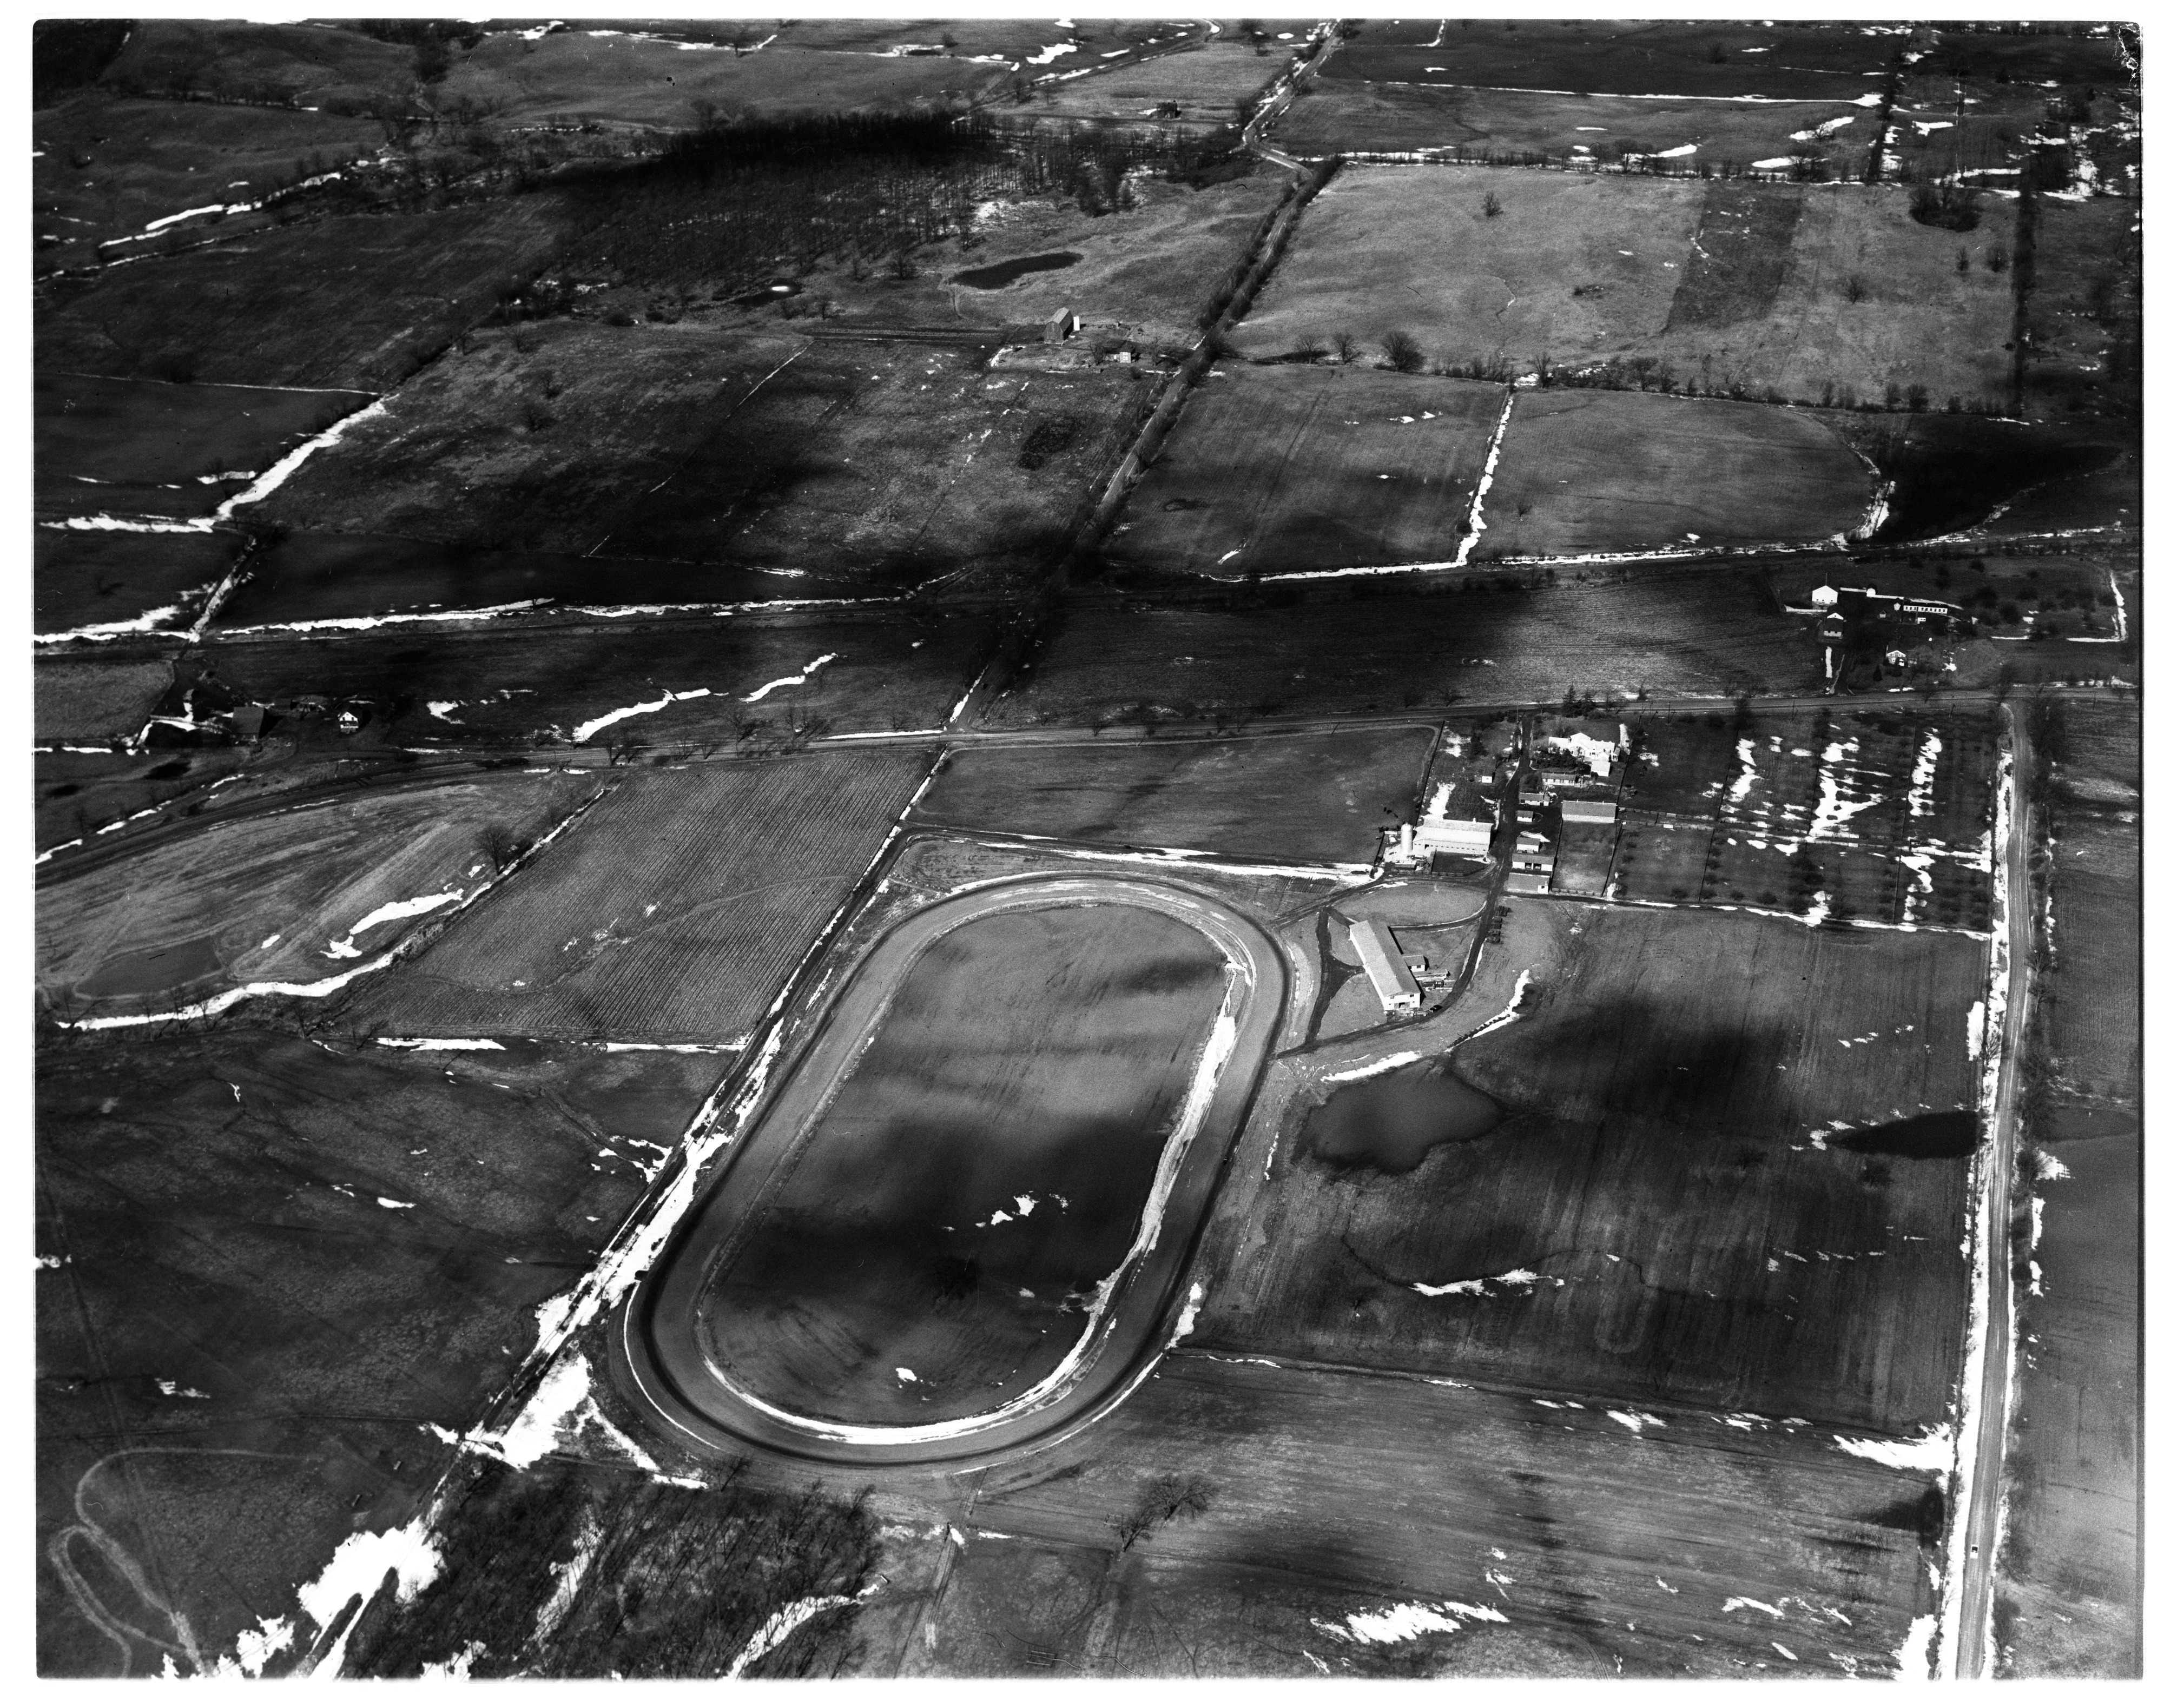 Aerial Photograph of Brennan Race Track near Bridgewater, February 1958 image